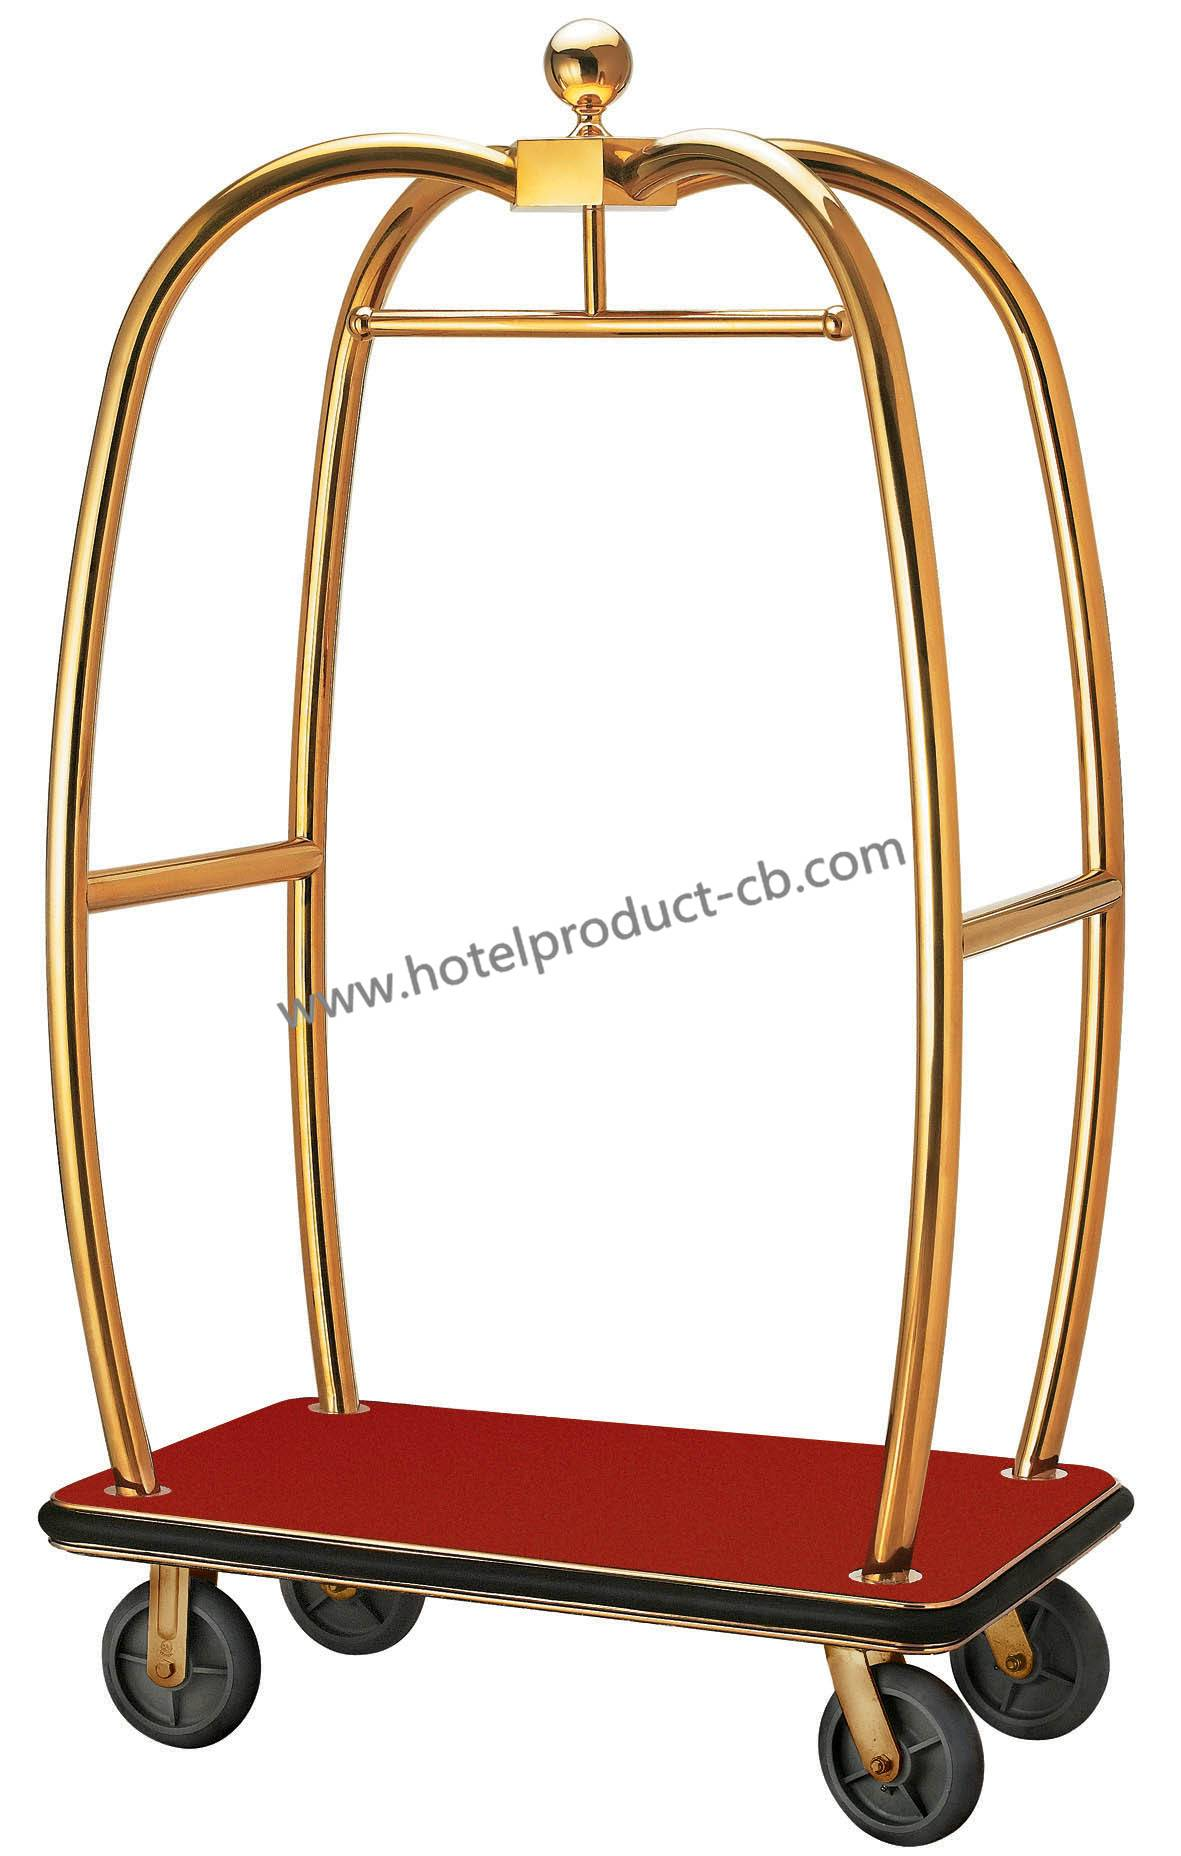 old style high quality luggage trolley